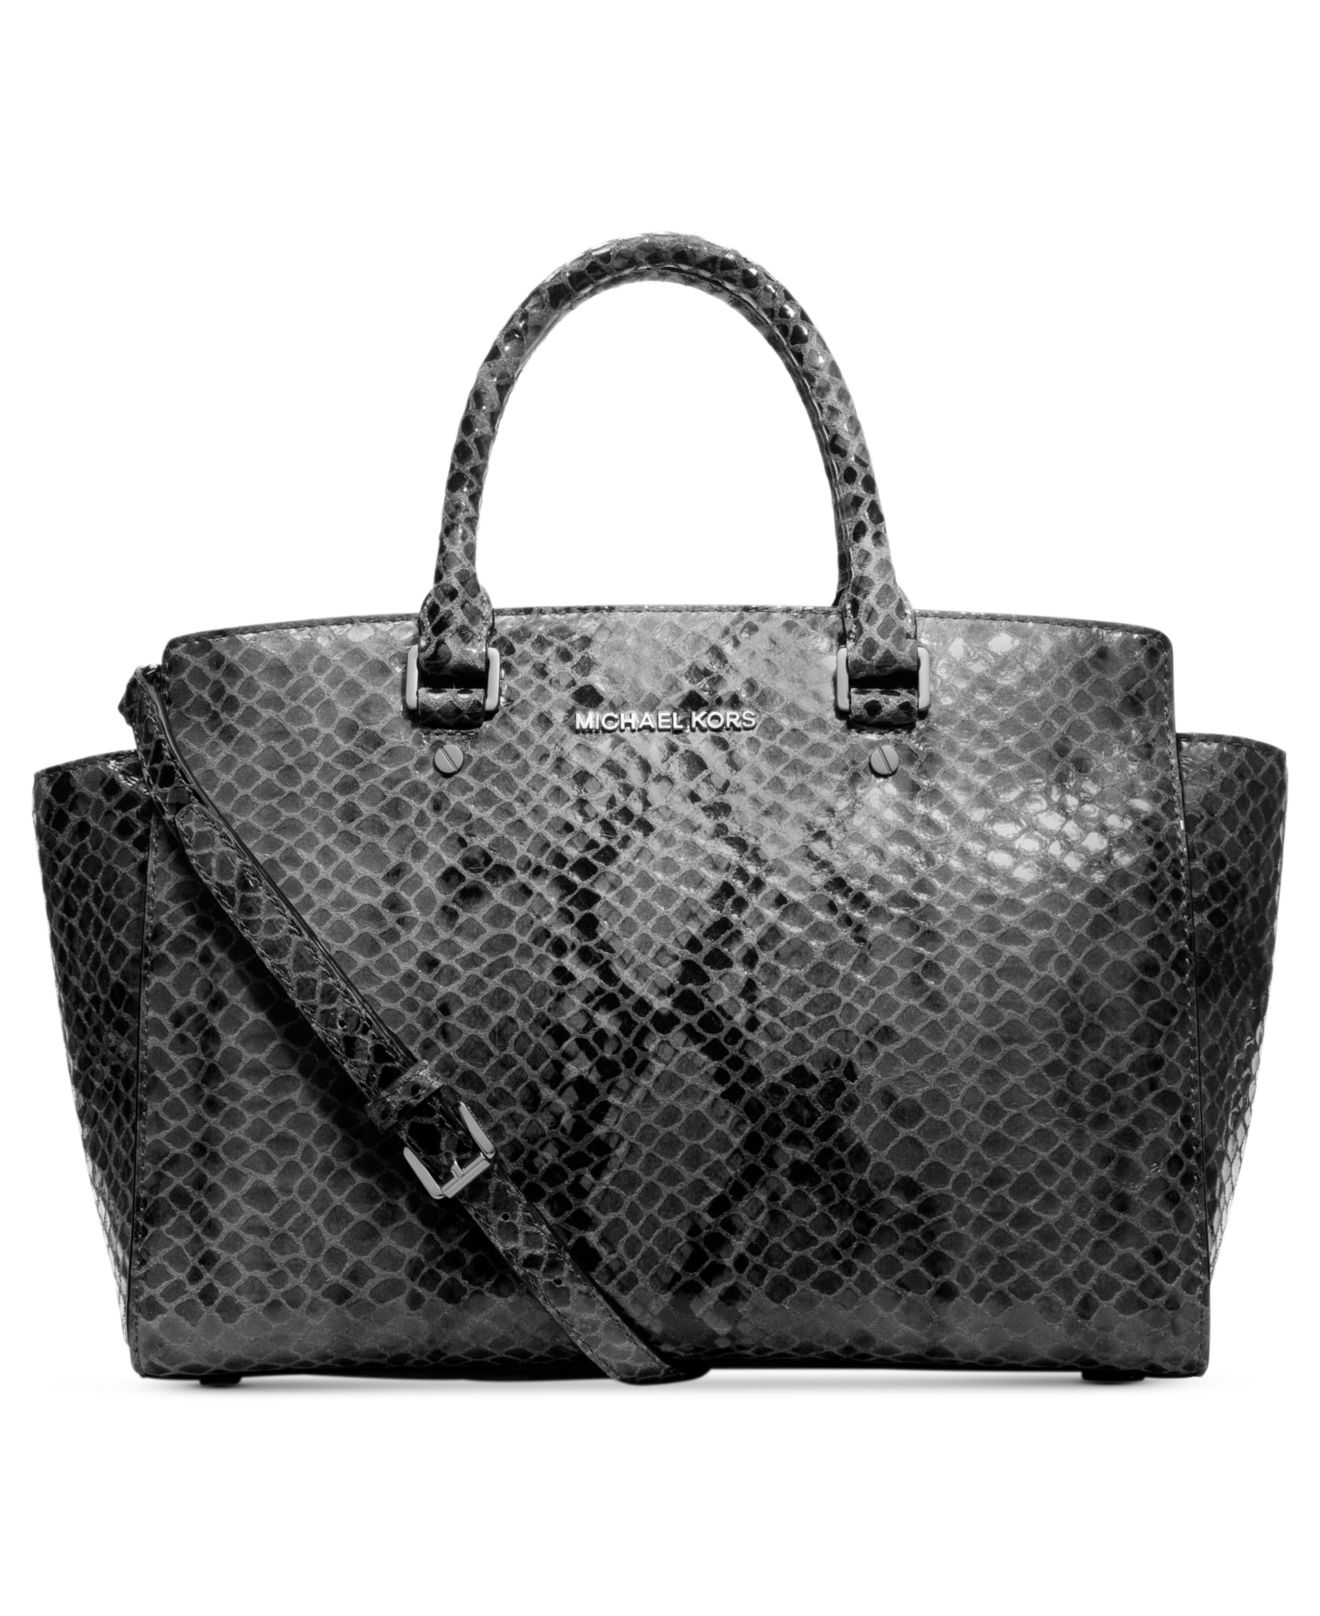 michael kors michael selma large python satchel in gray dk slate lyst. Black Bedroom Furniture Sets. Home Design Ideas